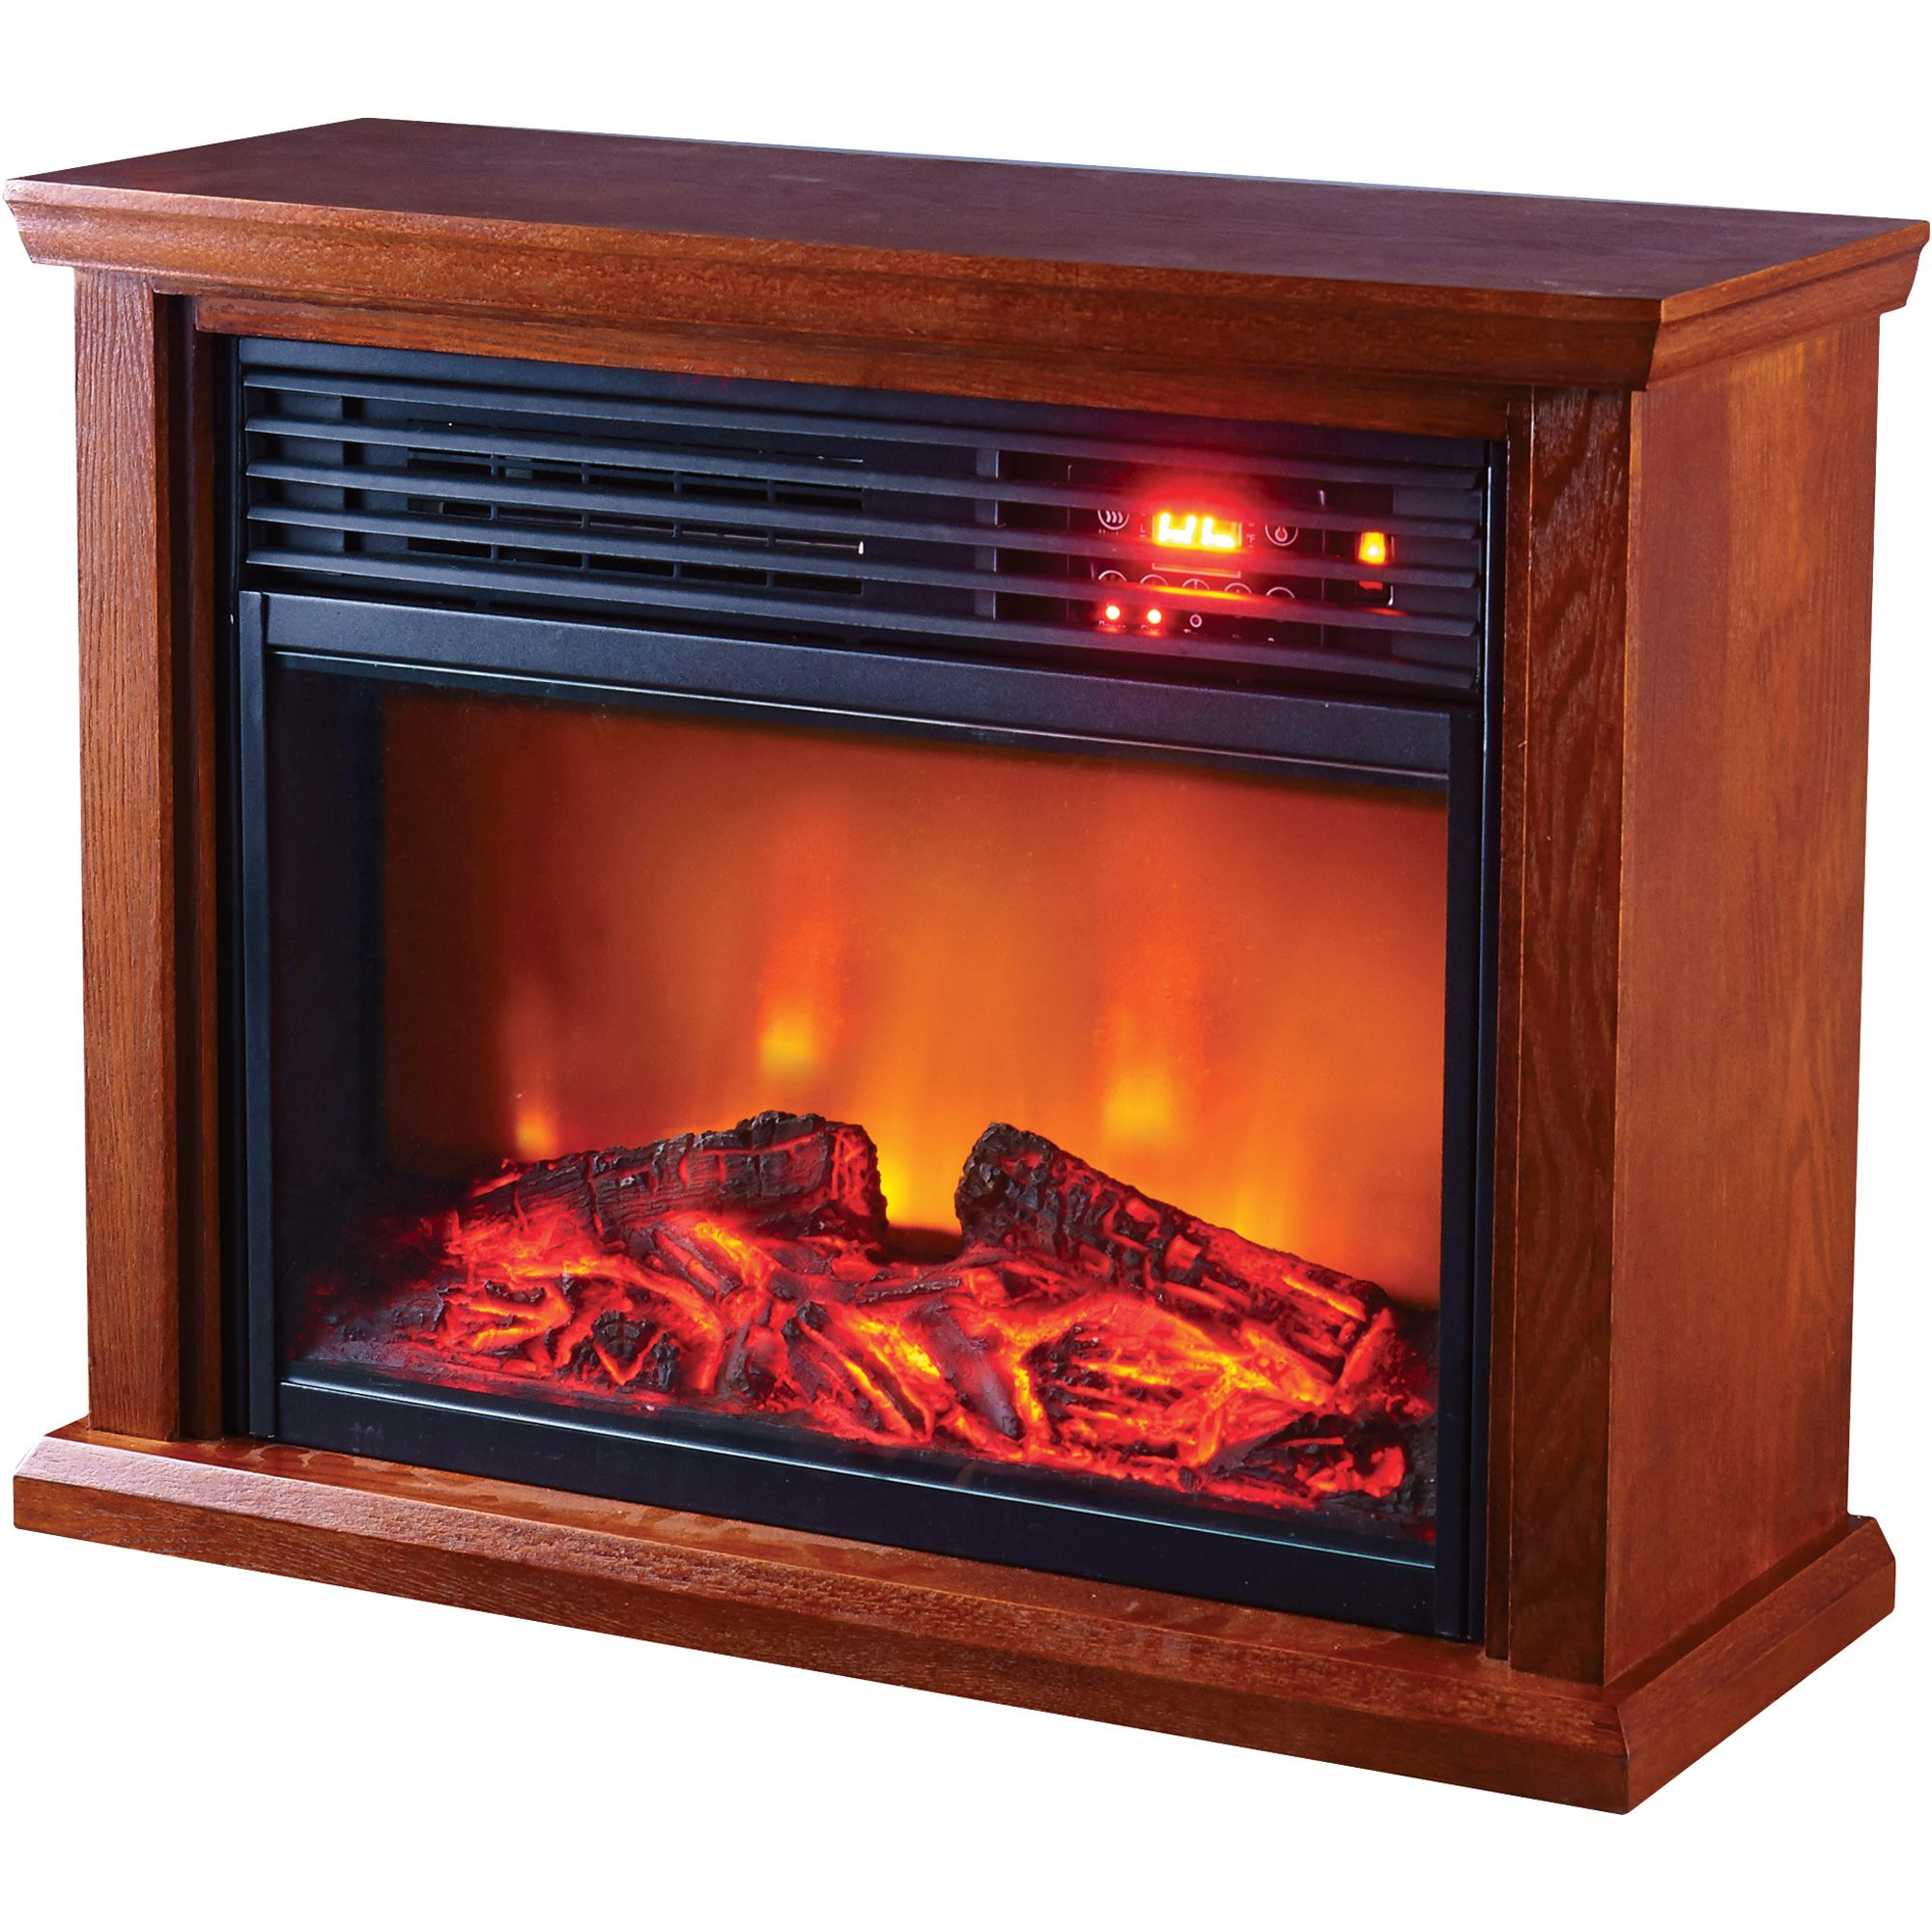 this profusion heat infrared electric fireplace puts soothing